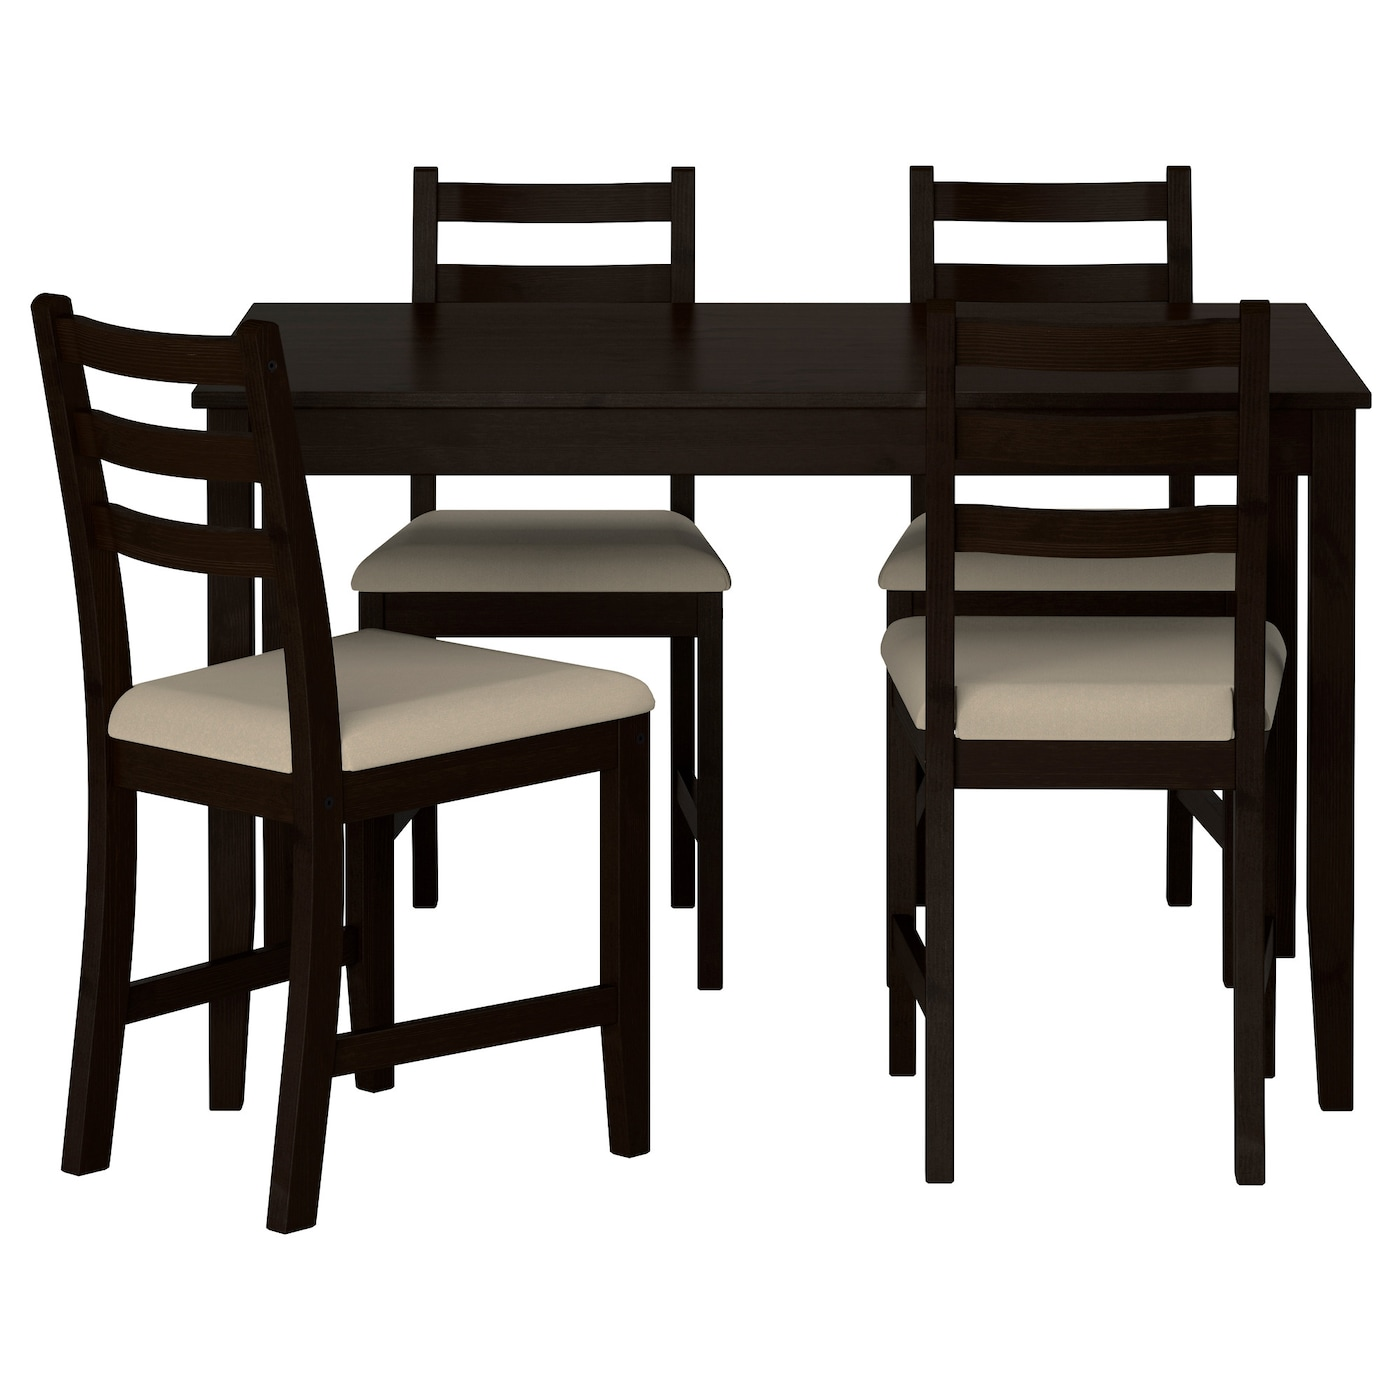 Lerhamn table and 4 chairs black brown ramna beige 118x74 for Black dining table set